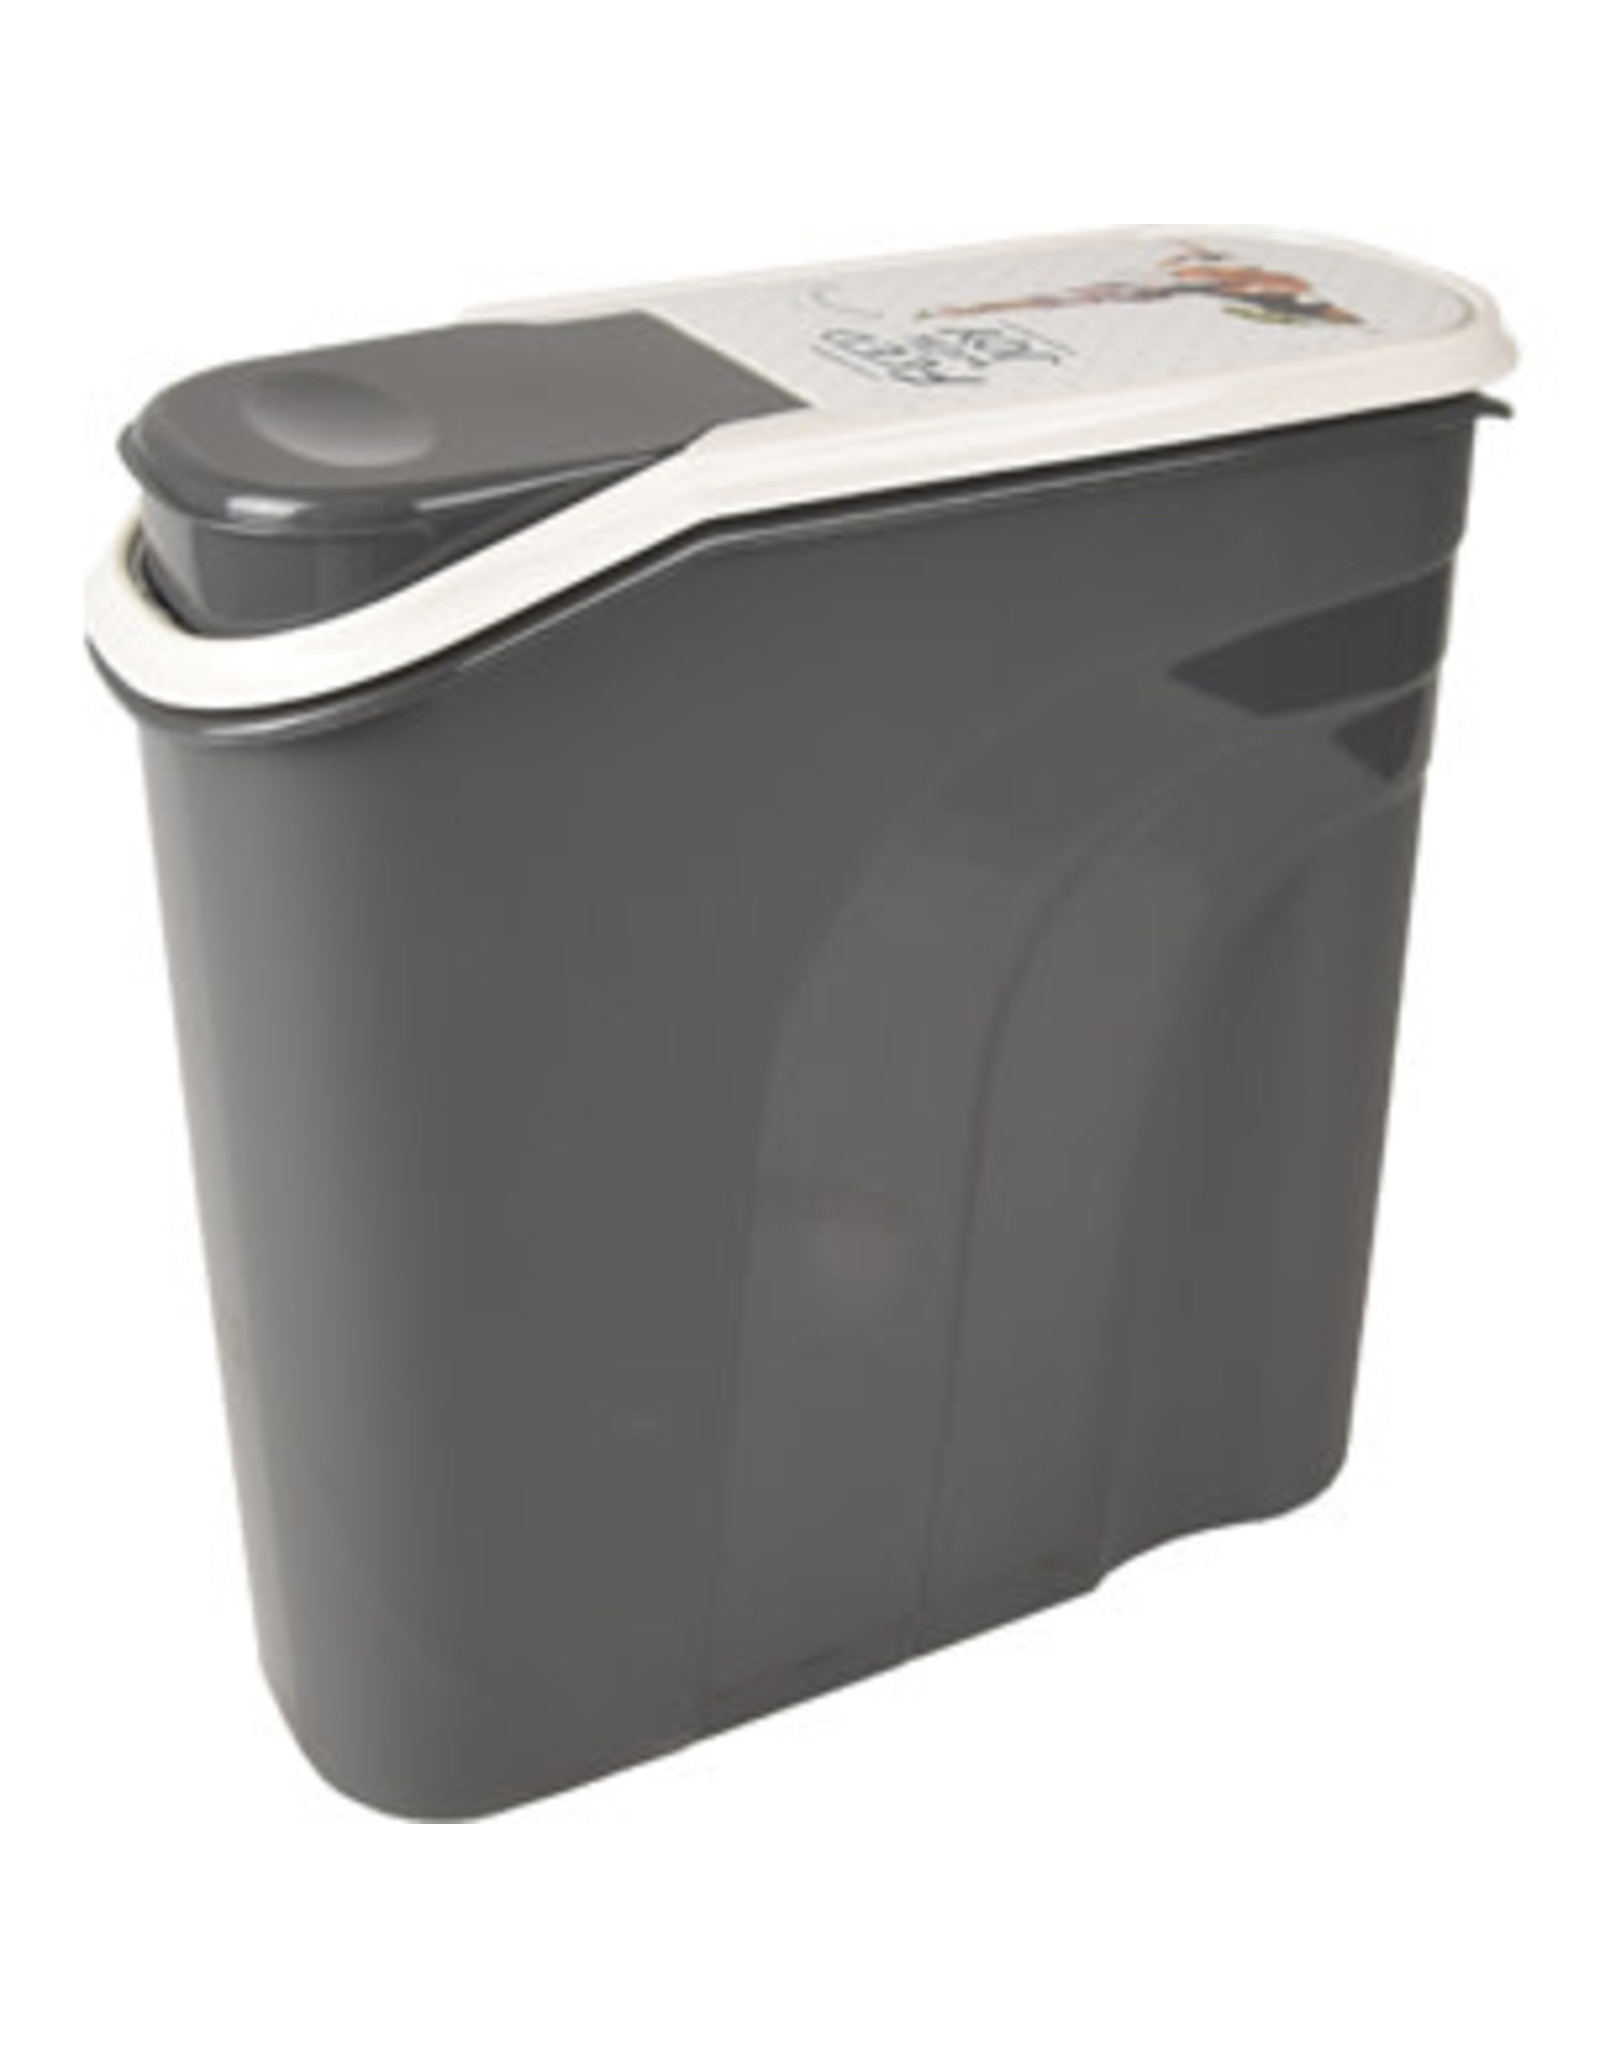 Food Container 5.6 liter